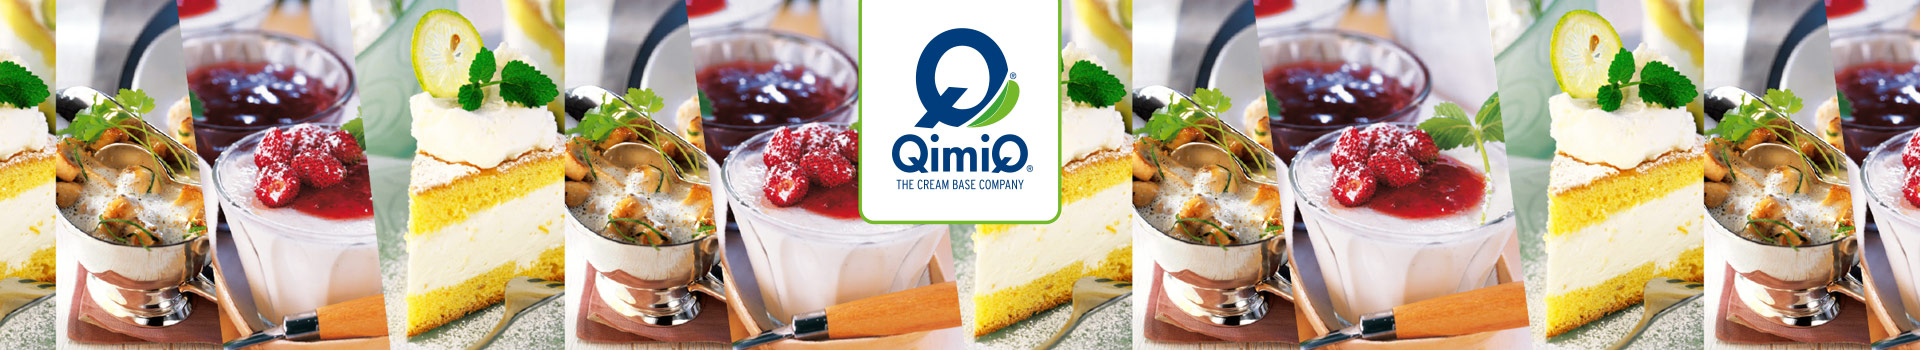 QimiQ in Dubai, QimiQ in the Emirates (UAE), QimiQ in Abu Dhabi, QimiQ in the Gulf Cooperation Council (GCC) and QimiQ in Jordan